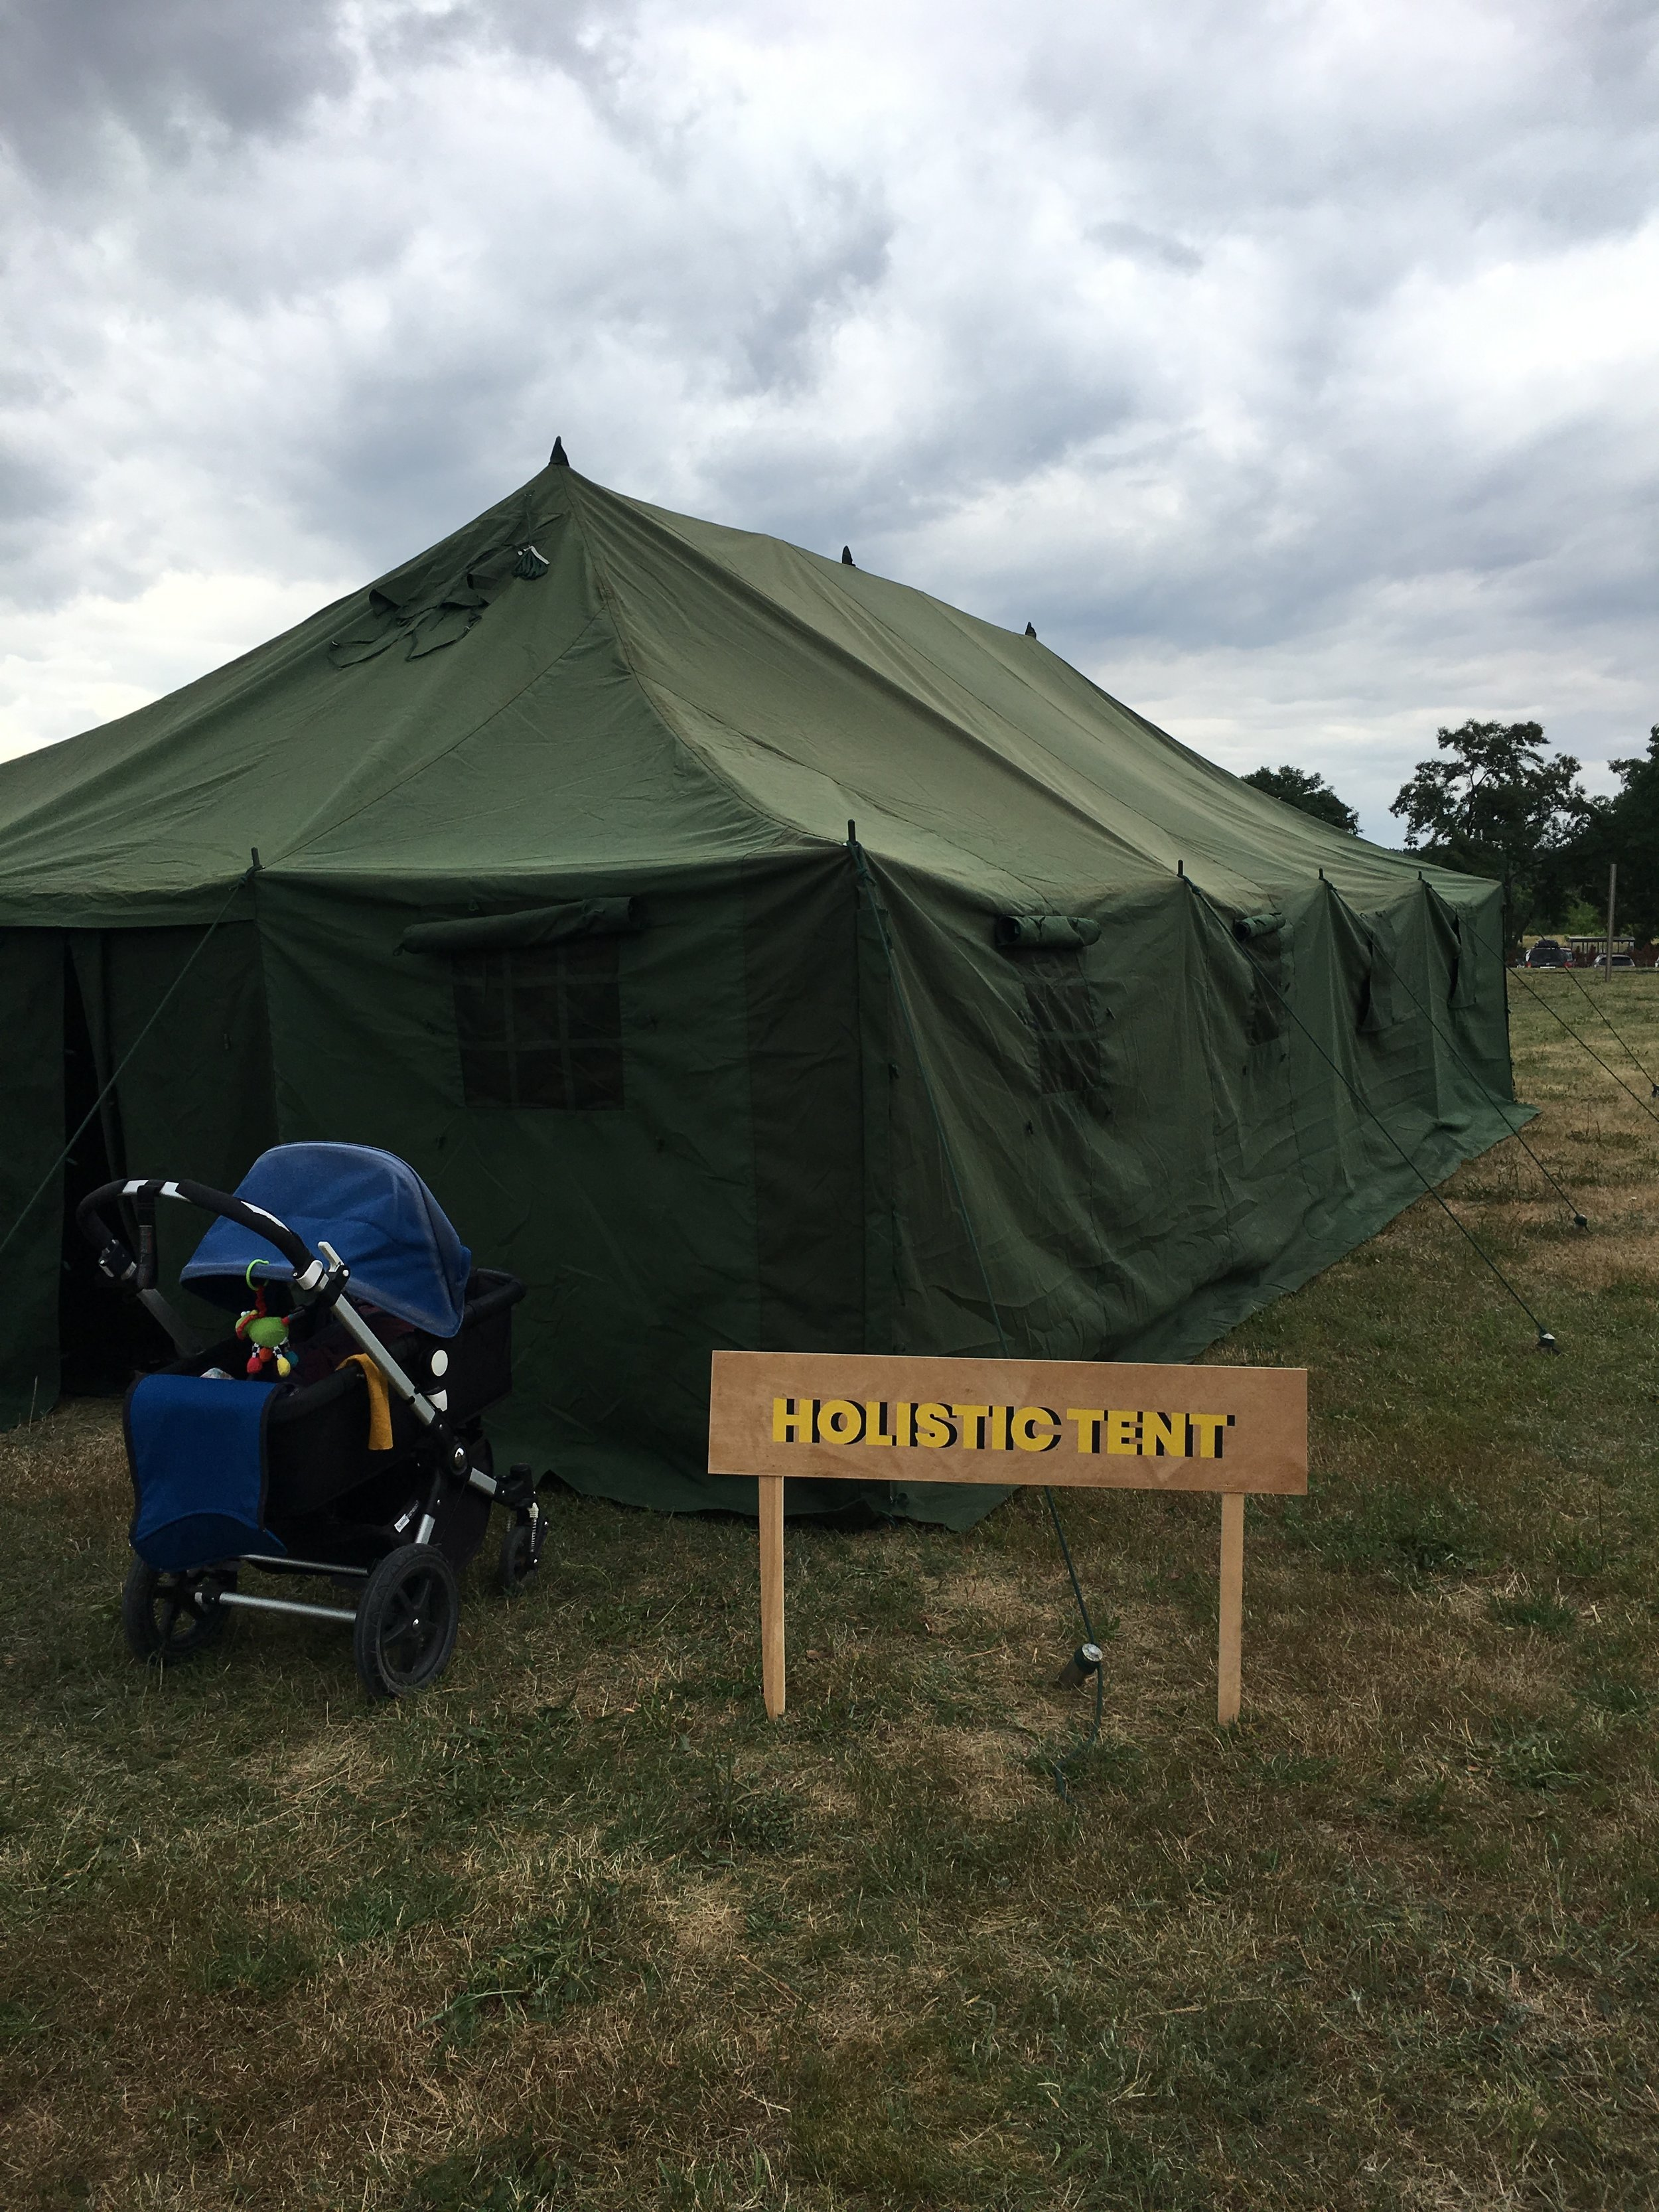 Holistic Tent  on site where both  Mycohood's  and WOMB's lectures took place.